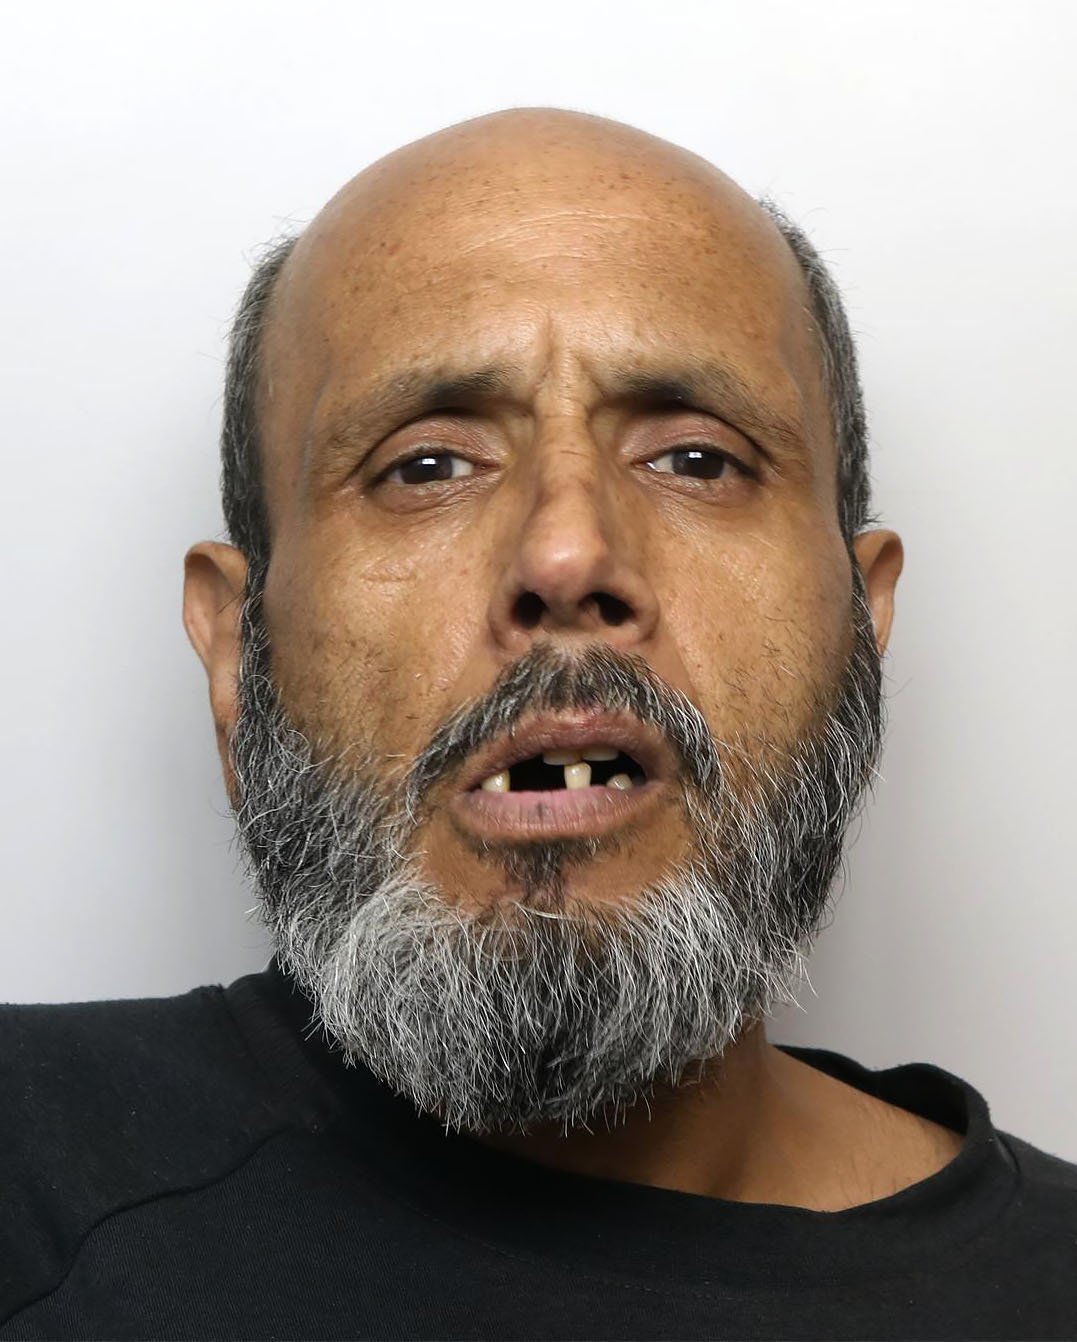 Copyright Ben Lack Photography Ltd Rogue Allah Ditta who has been jailed for a Tesco cash card fraud that allowed him to shop in Tesco for free running up a bill of almost ??60,000 after a software glitch. Words Mark Branagan. Pic Ben Lack 07970 850611 ??150 minimum use, irrespective of any previous use. ??50 for internet use, irrespective of any previous use.